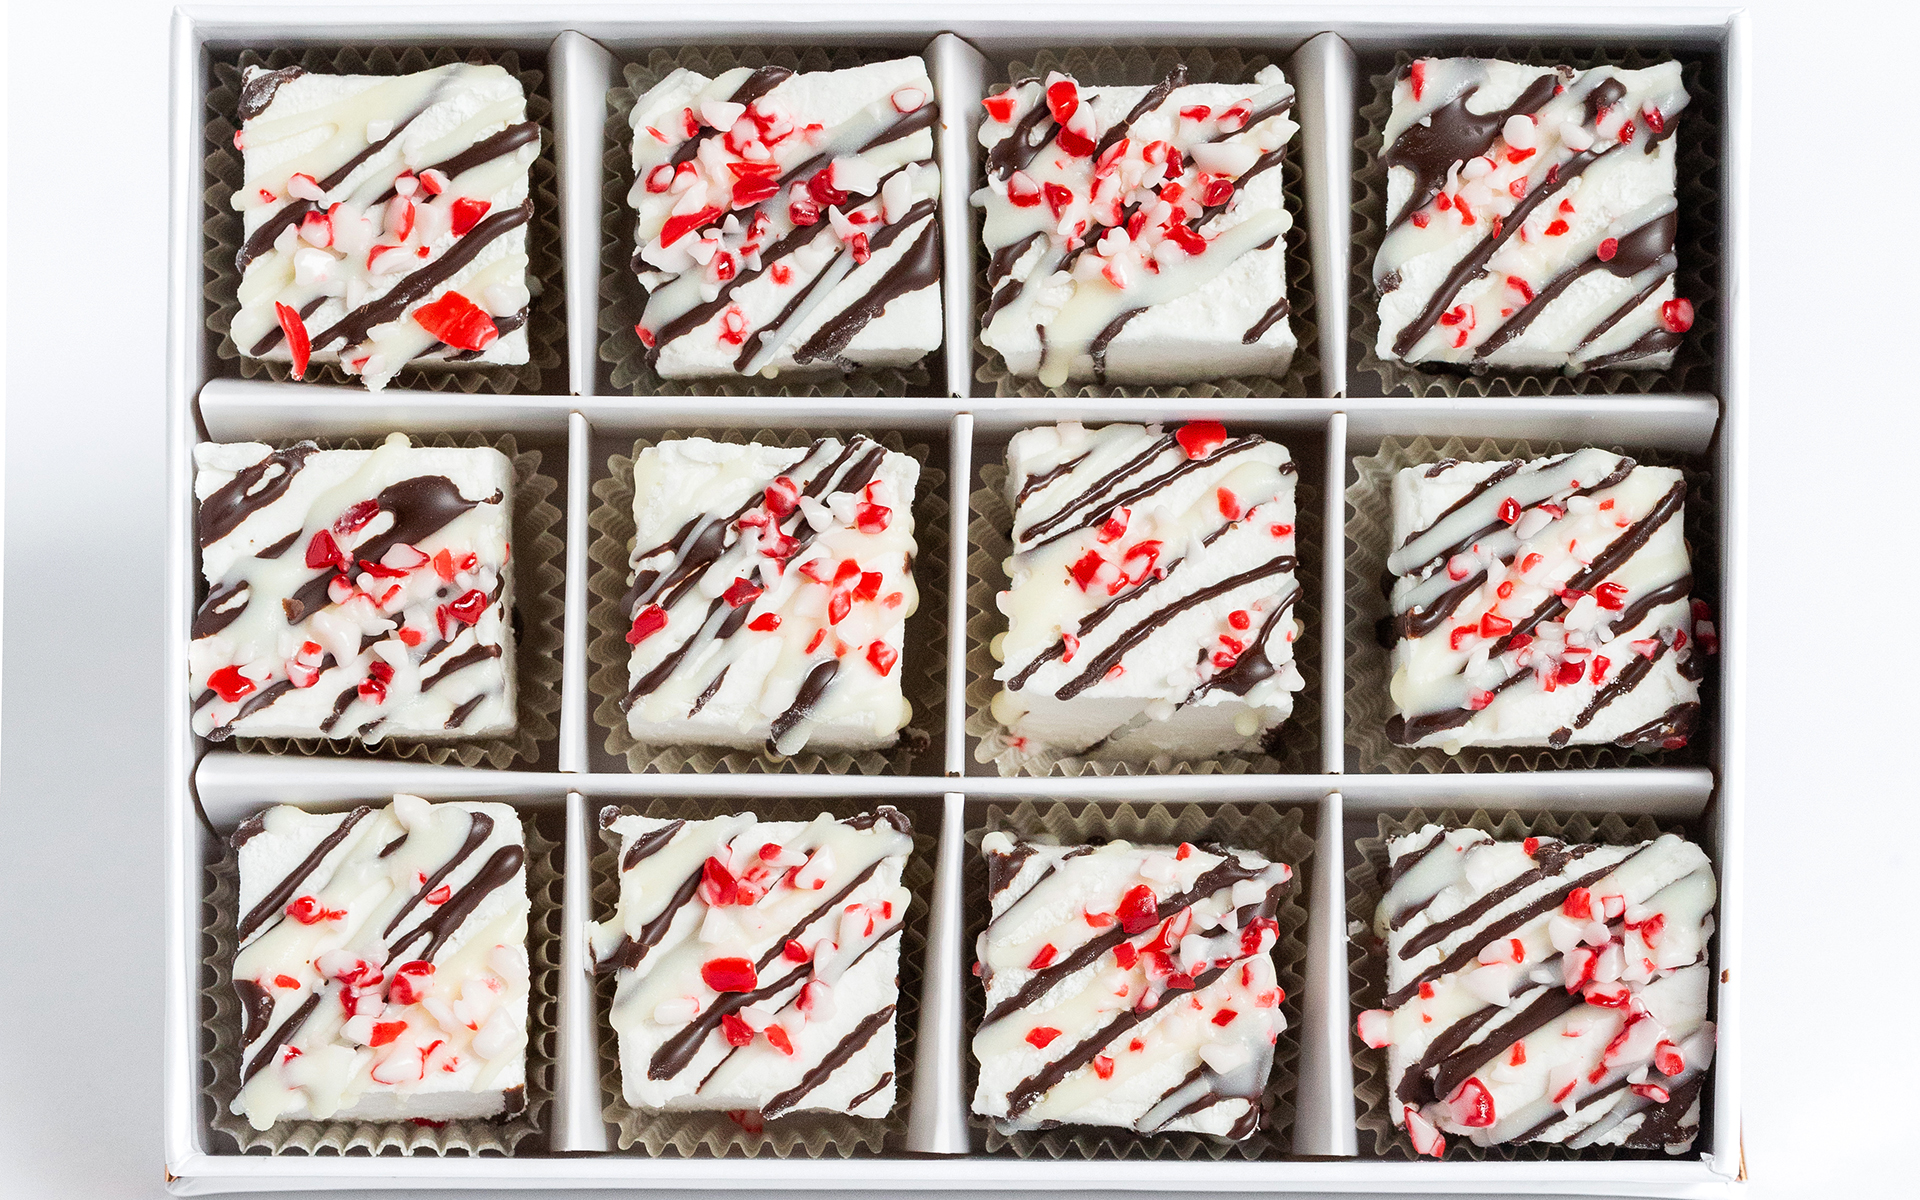 Peppermint and chocolate Mellows